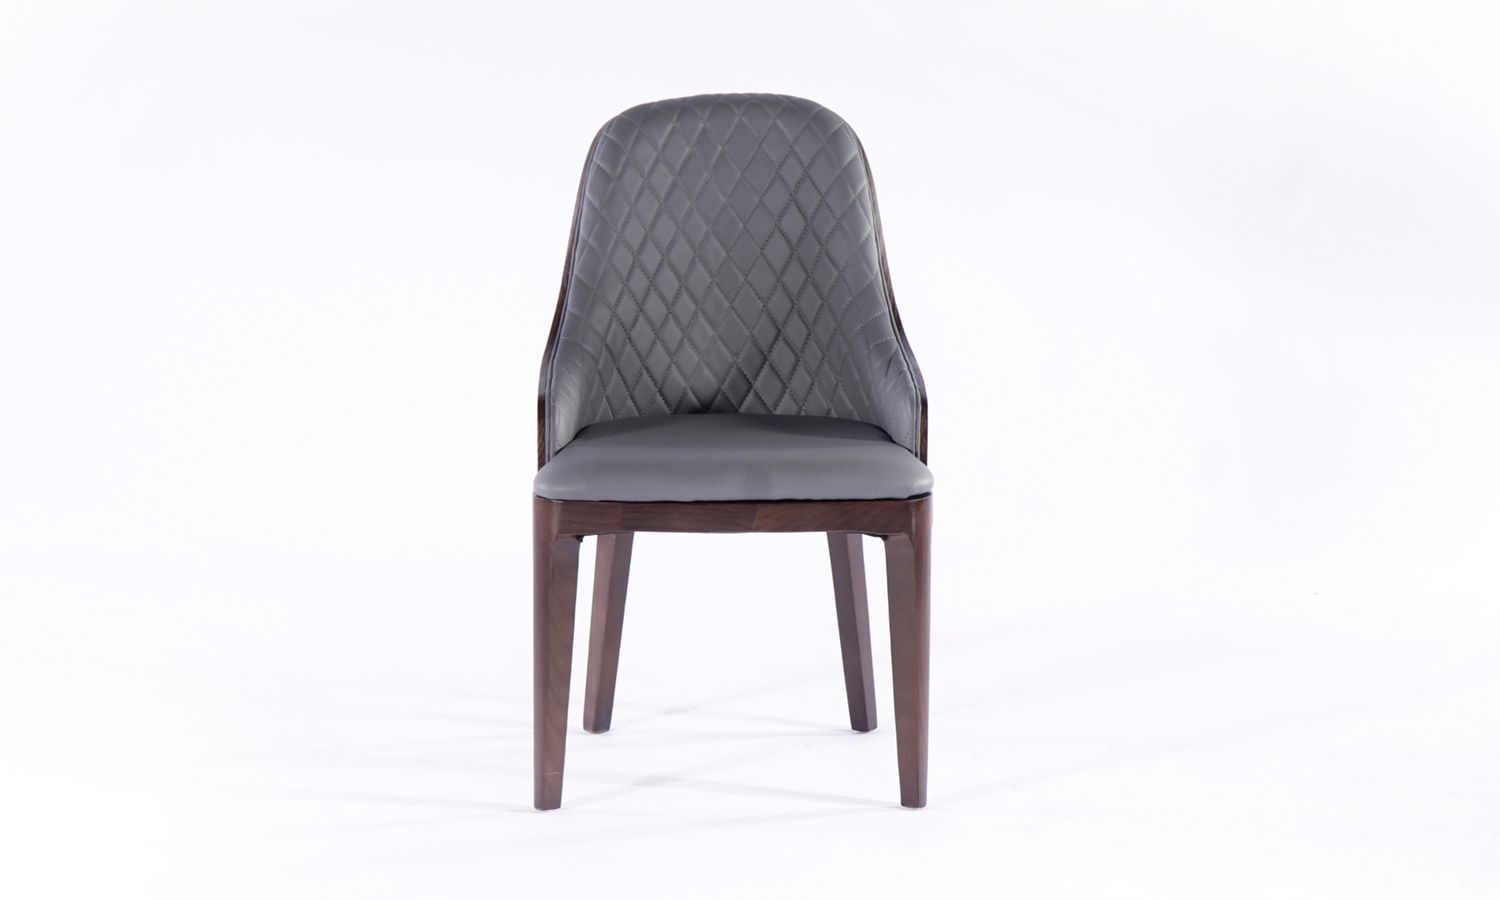 6 x Urban Deco Madrid Grey Faux Leather Dining Chair